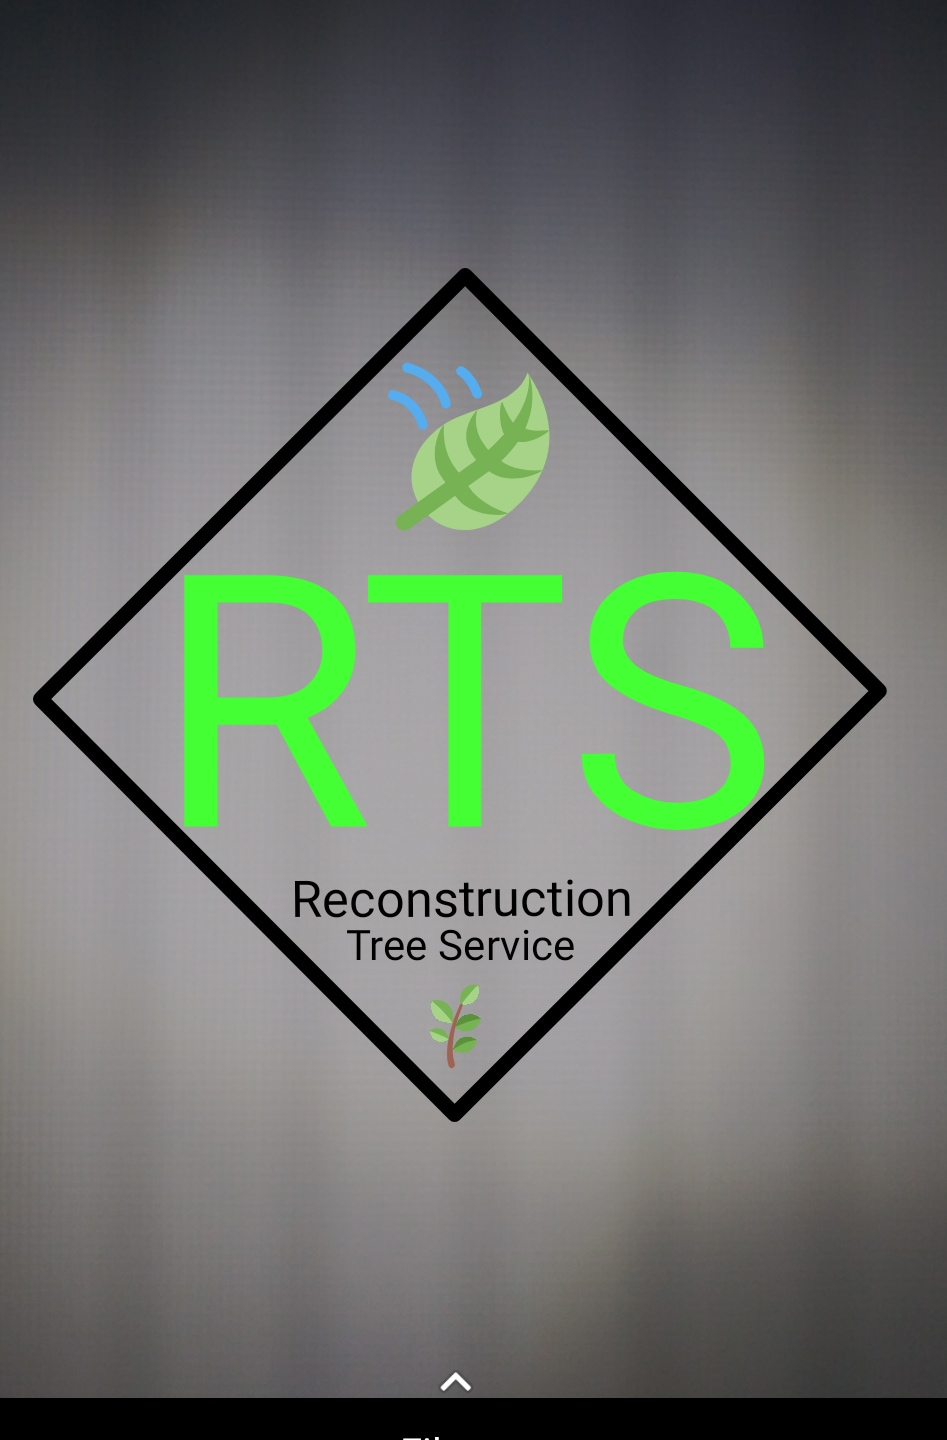 Reconstruction Tree Services